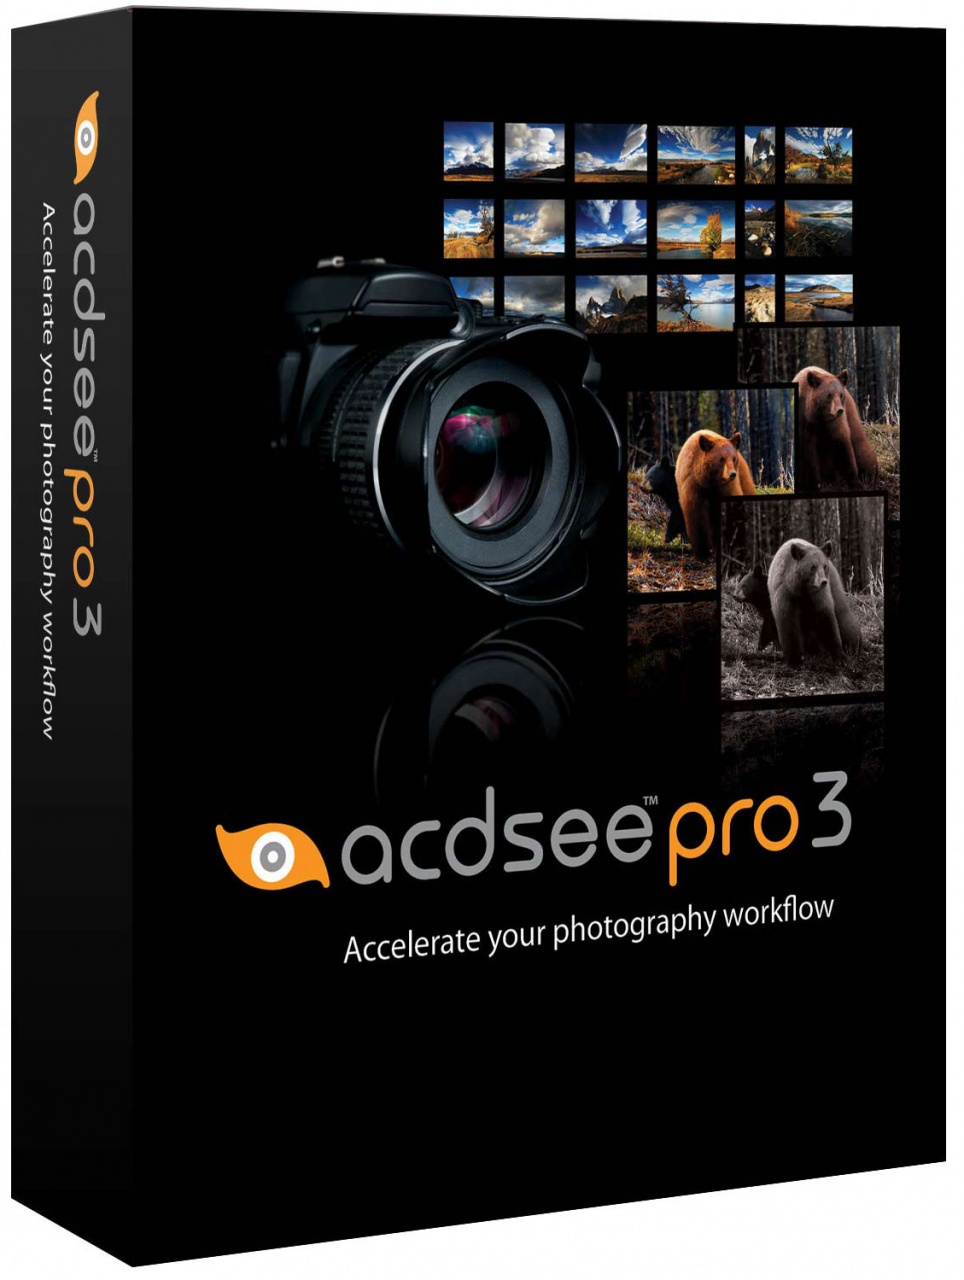 Acdsee Pro For Mac 3 Torrent